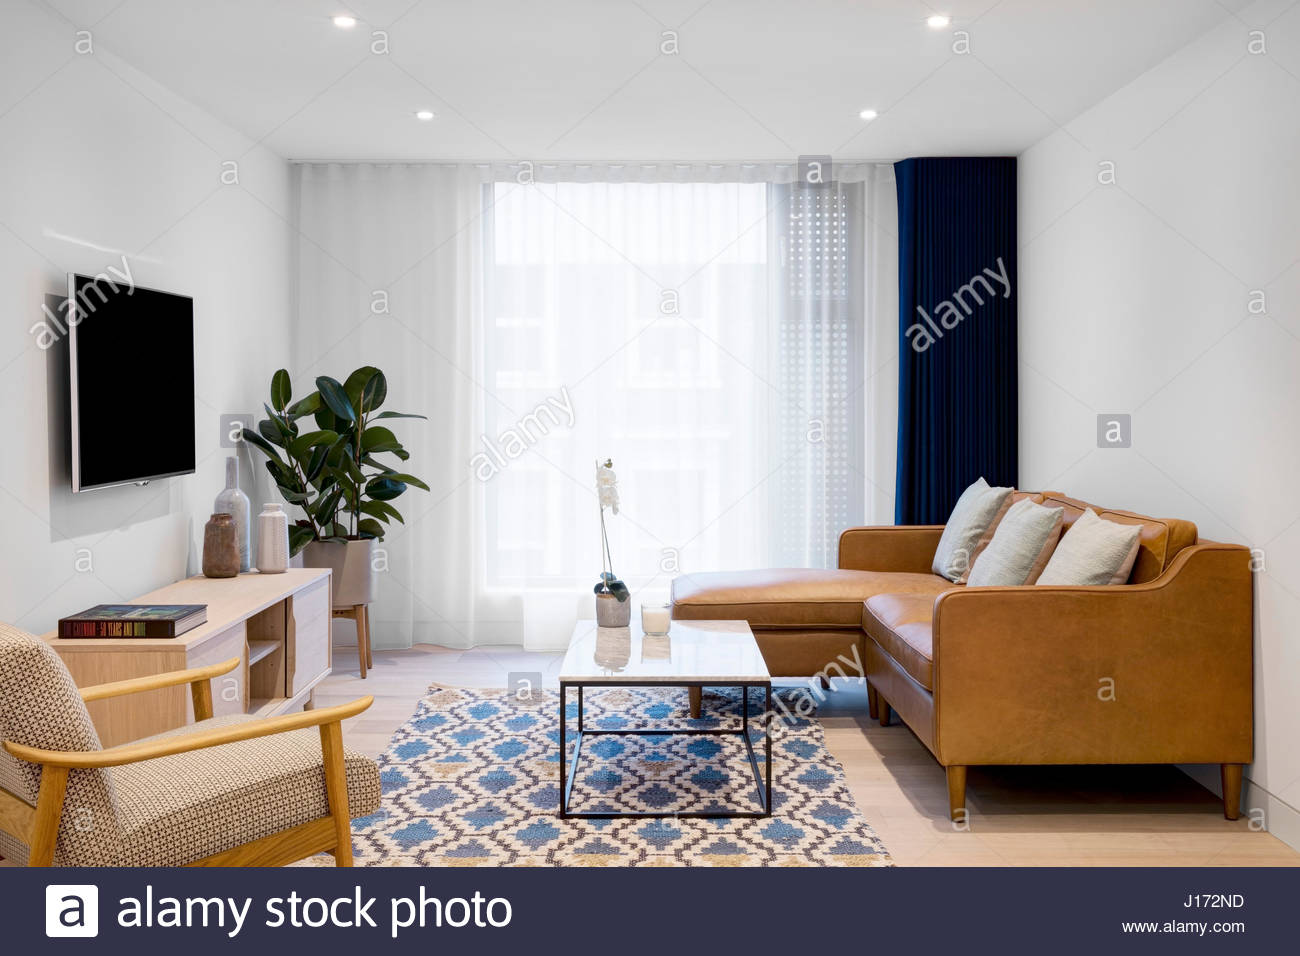 Full Frontal Tv Stock Photos & Full Frontal Tv Stock Images - Alamy